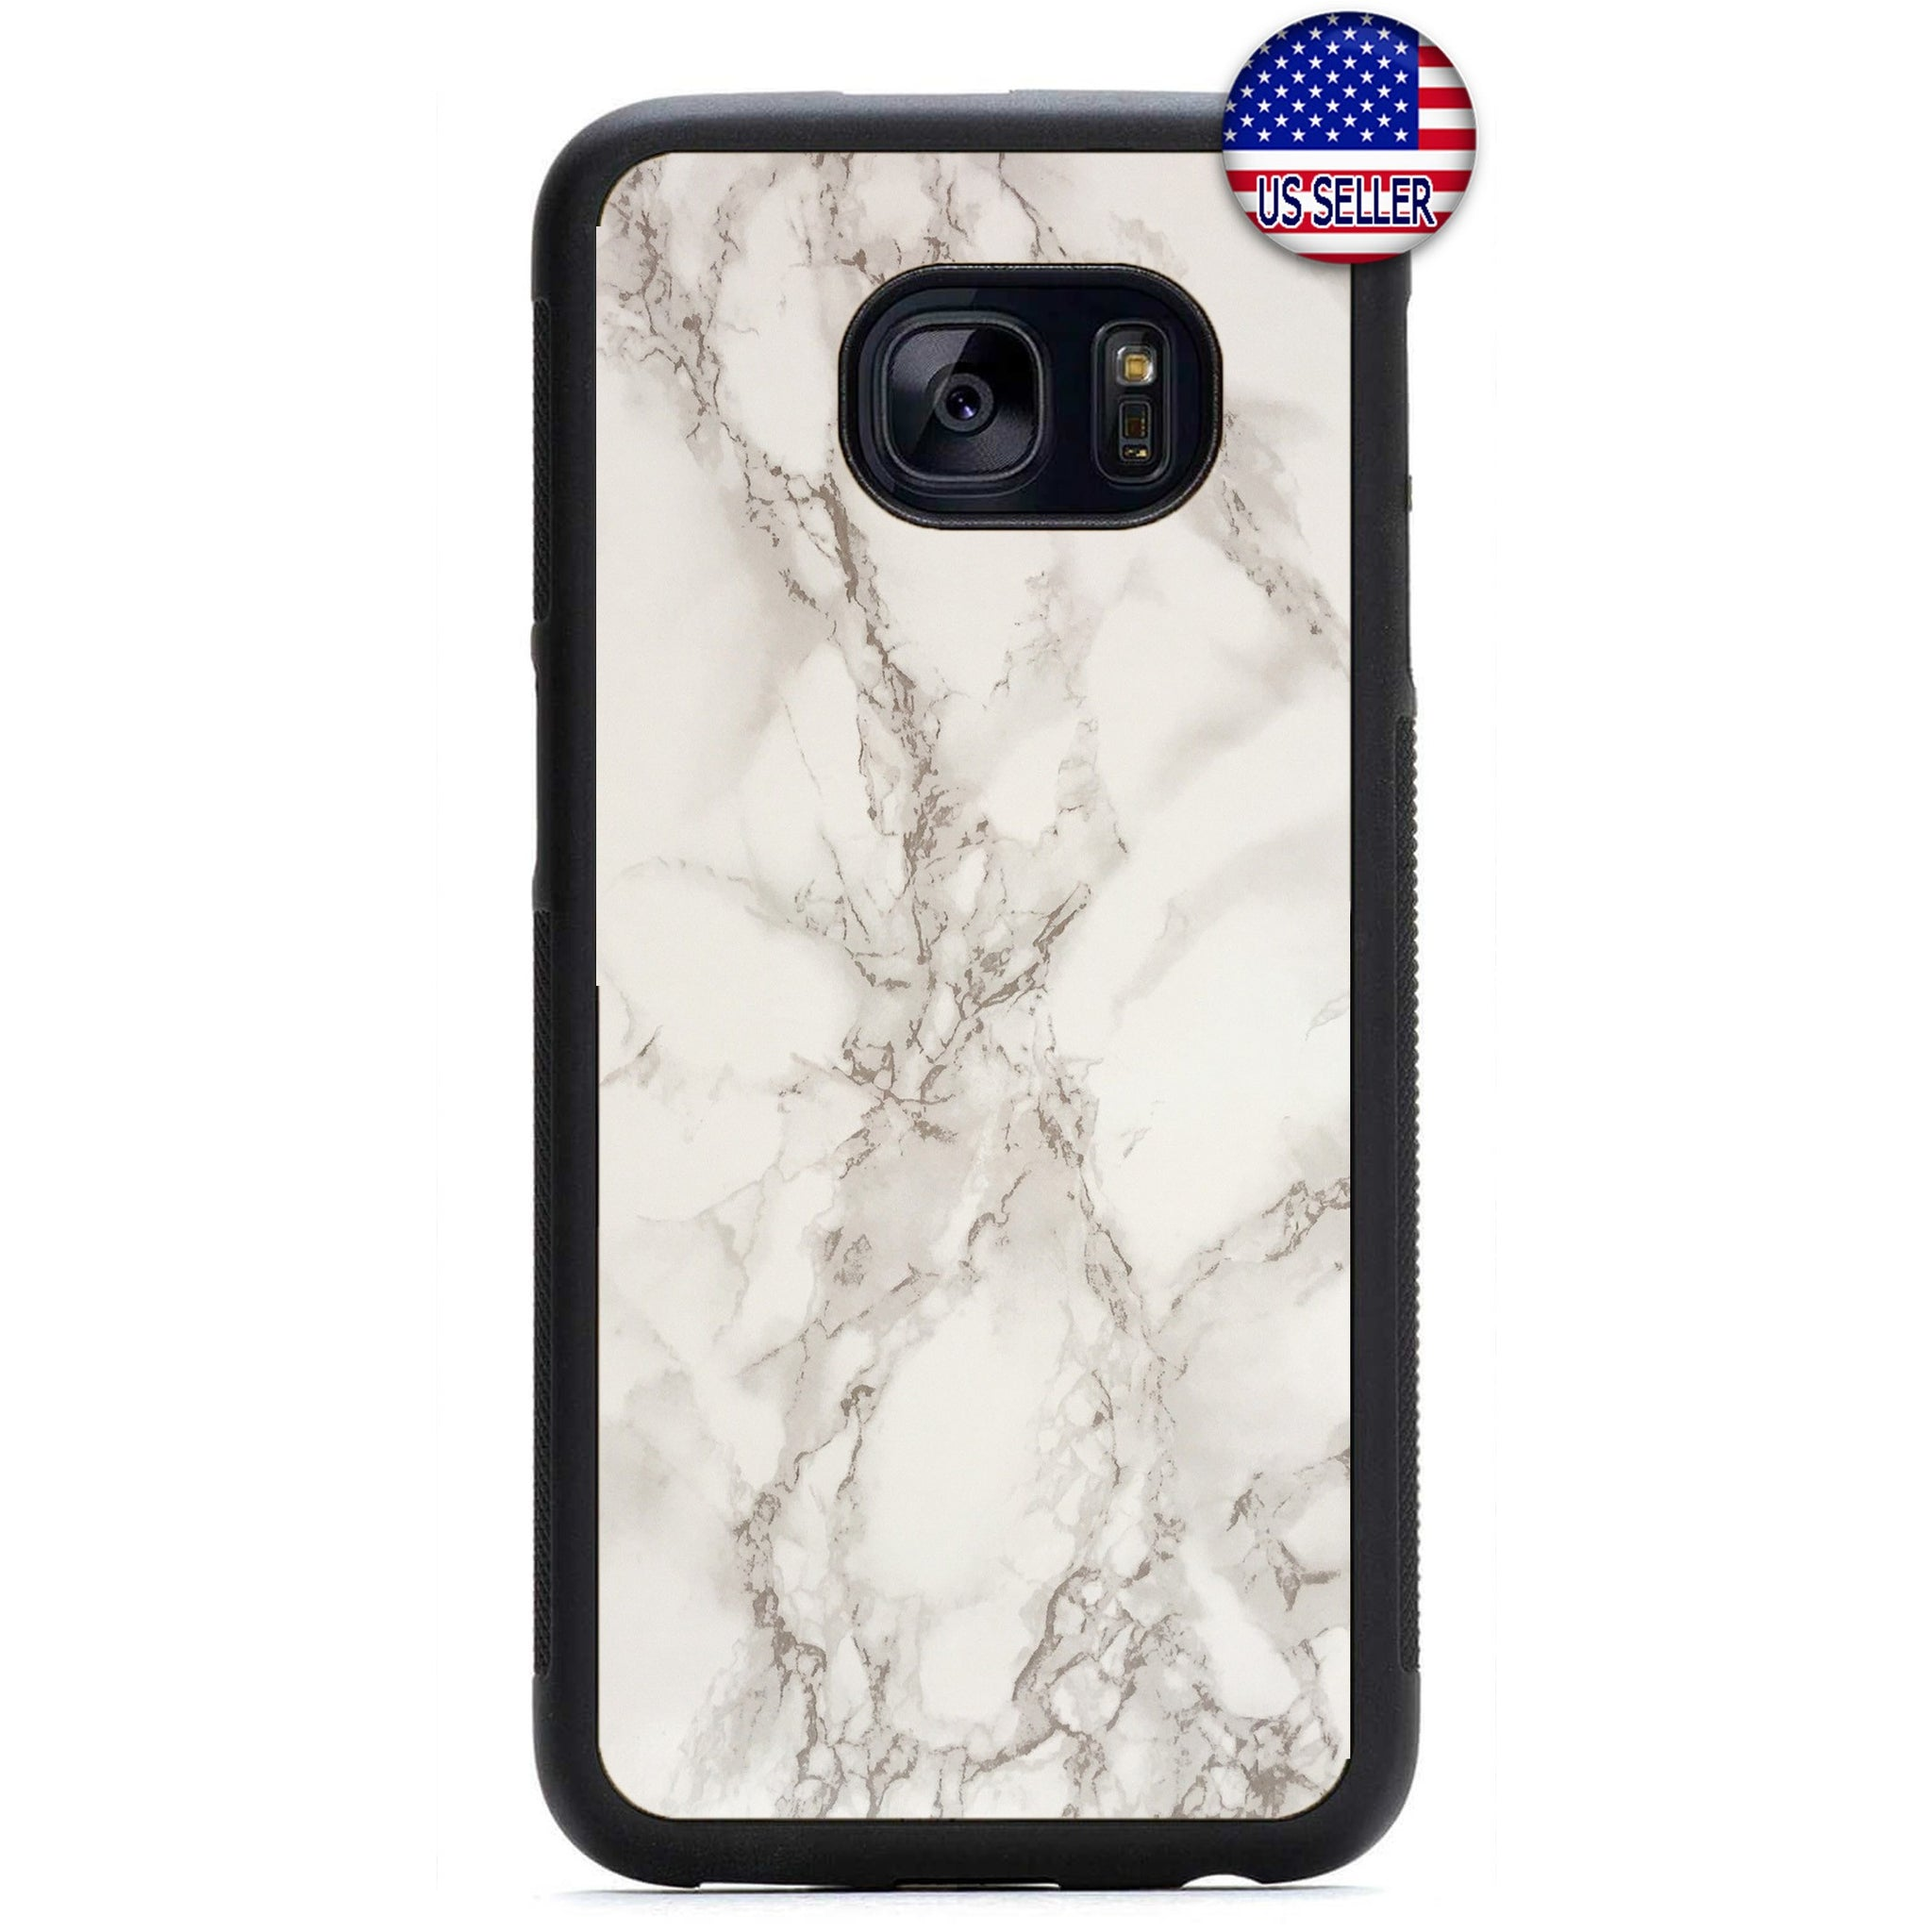 Pearl White Marble Granite Rubber Case Cover For Samsung Galaxy Note